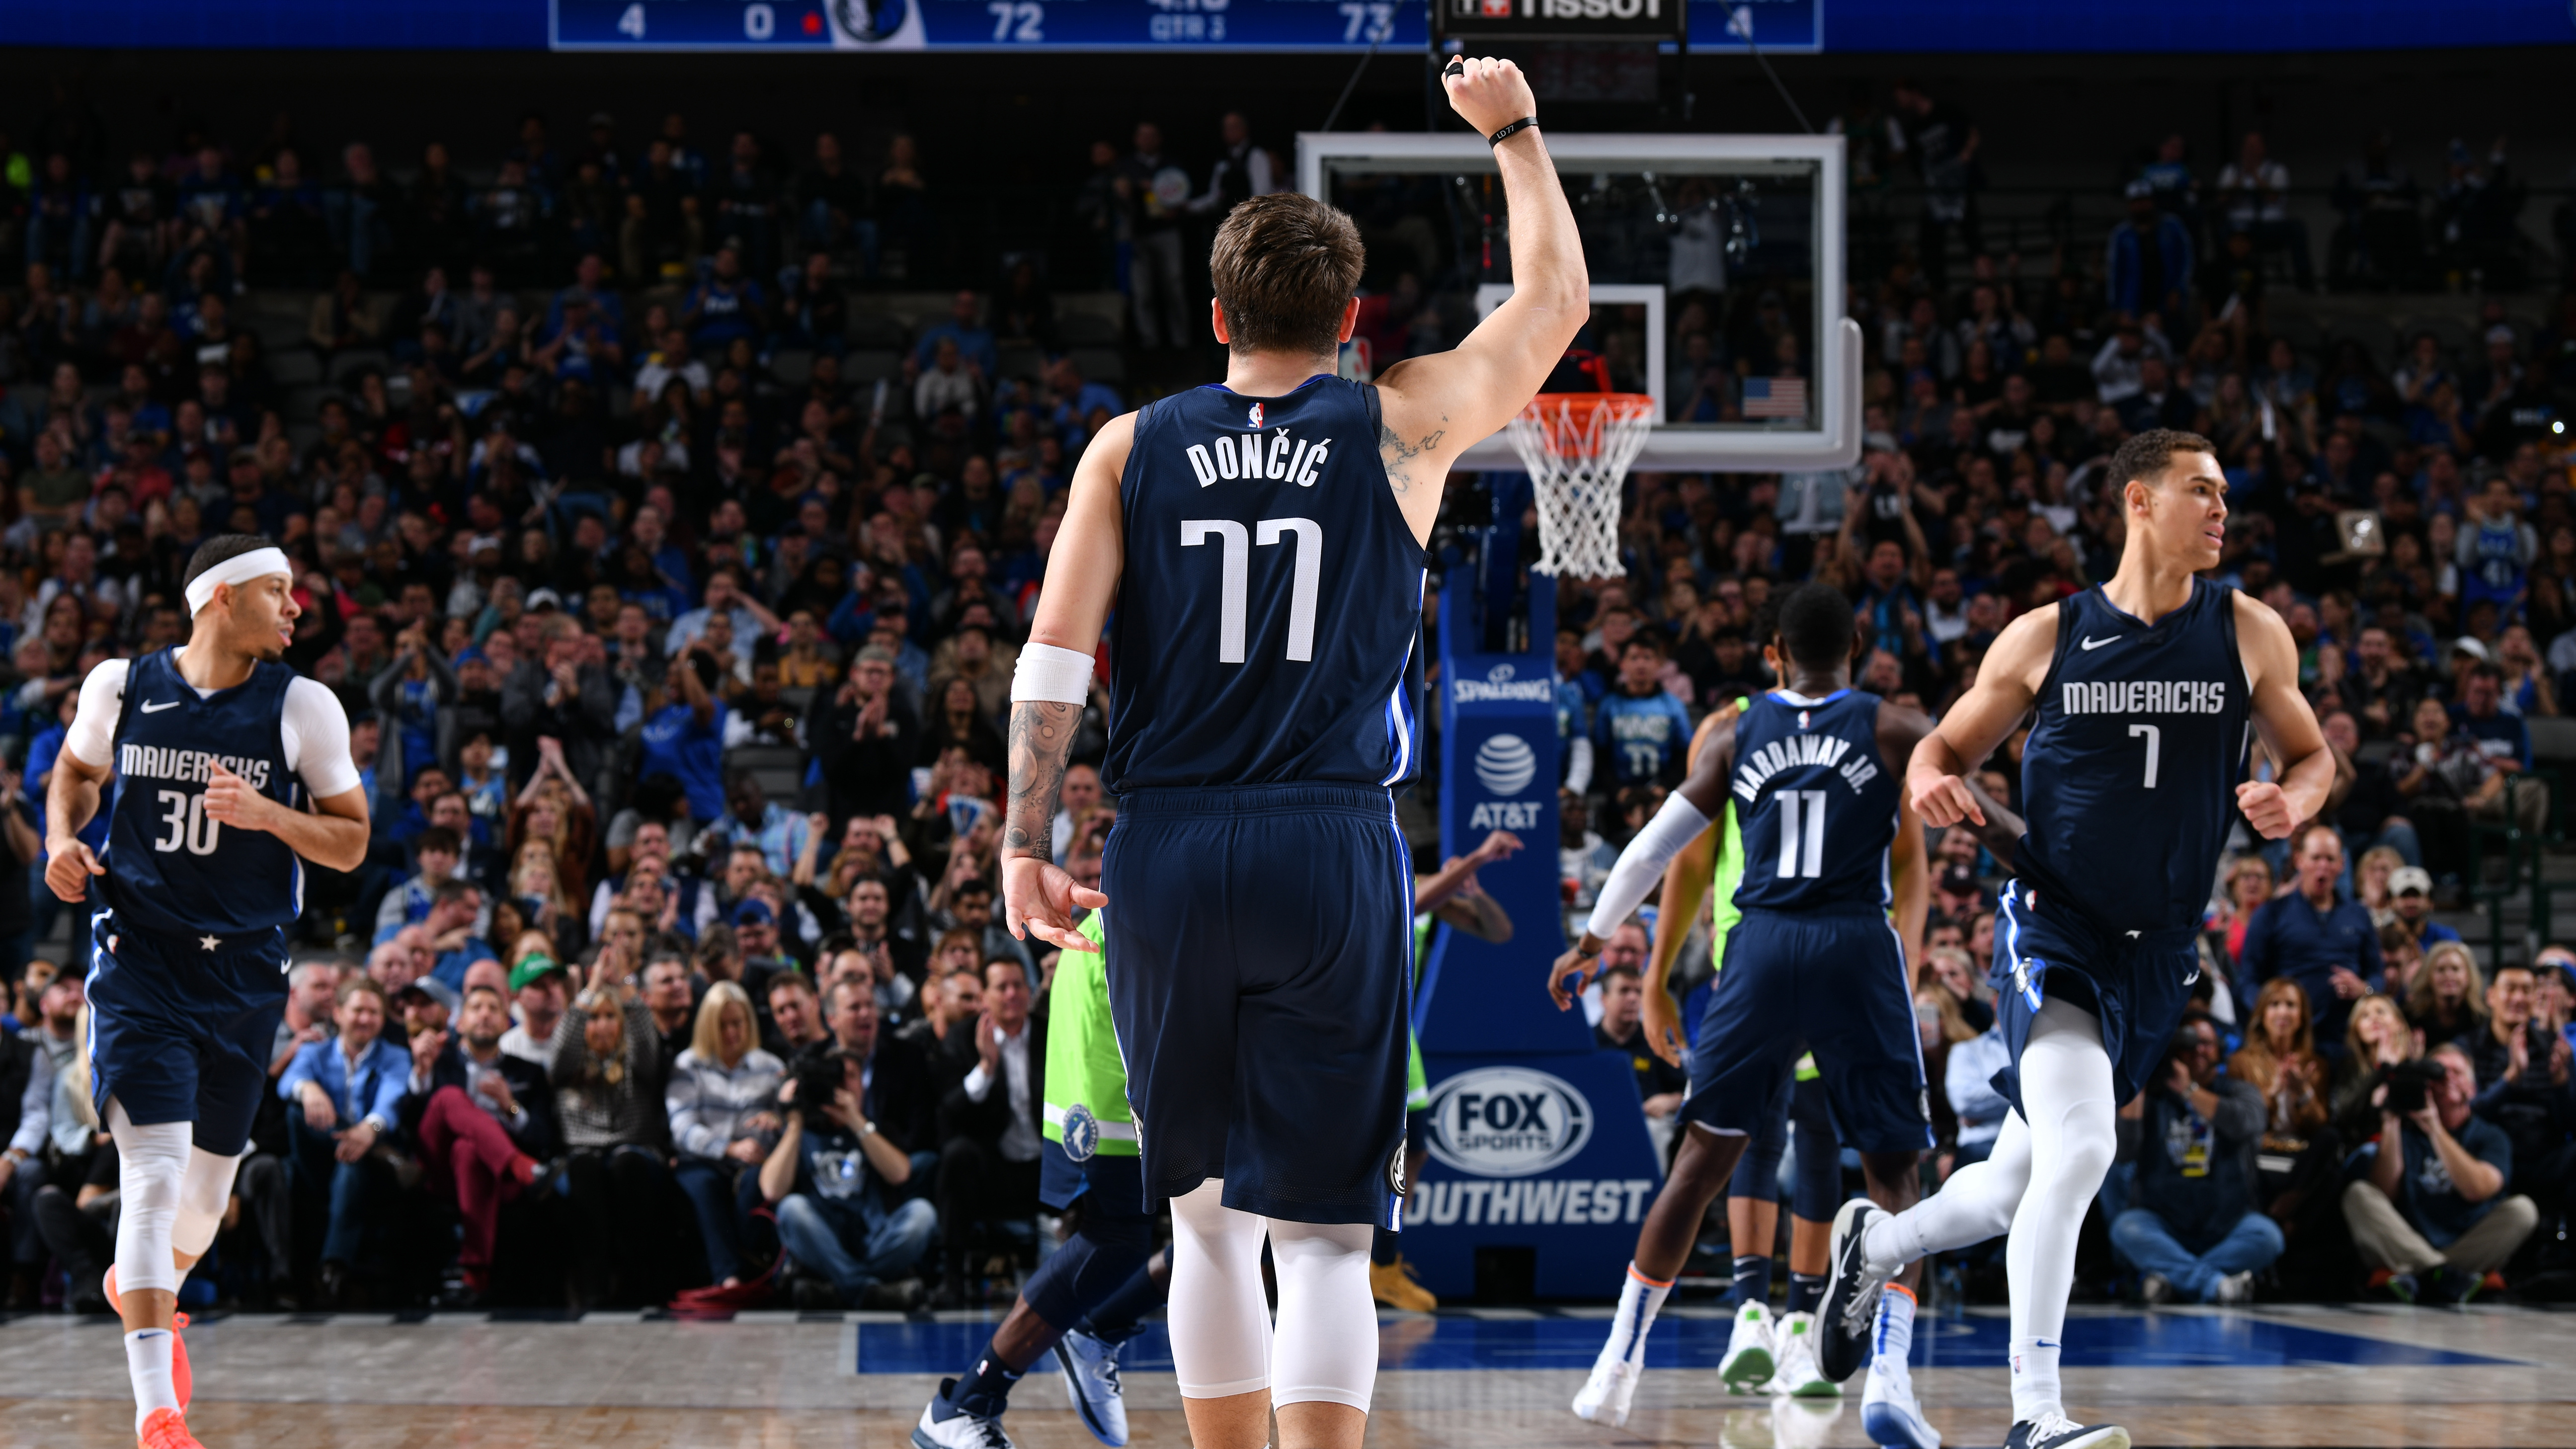 05.12.19. Обзор. GAME RECAP: Mavericks 121, Timberwolves 114